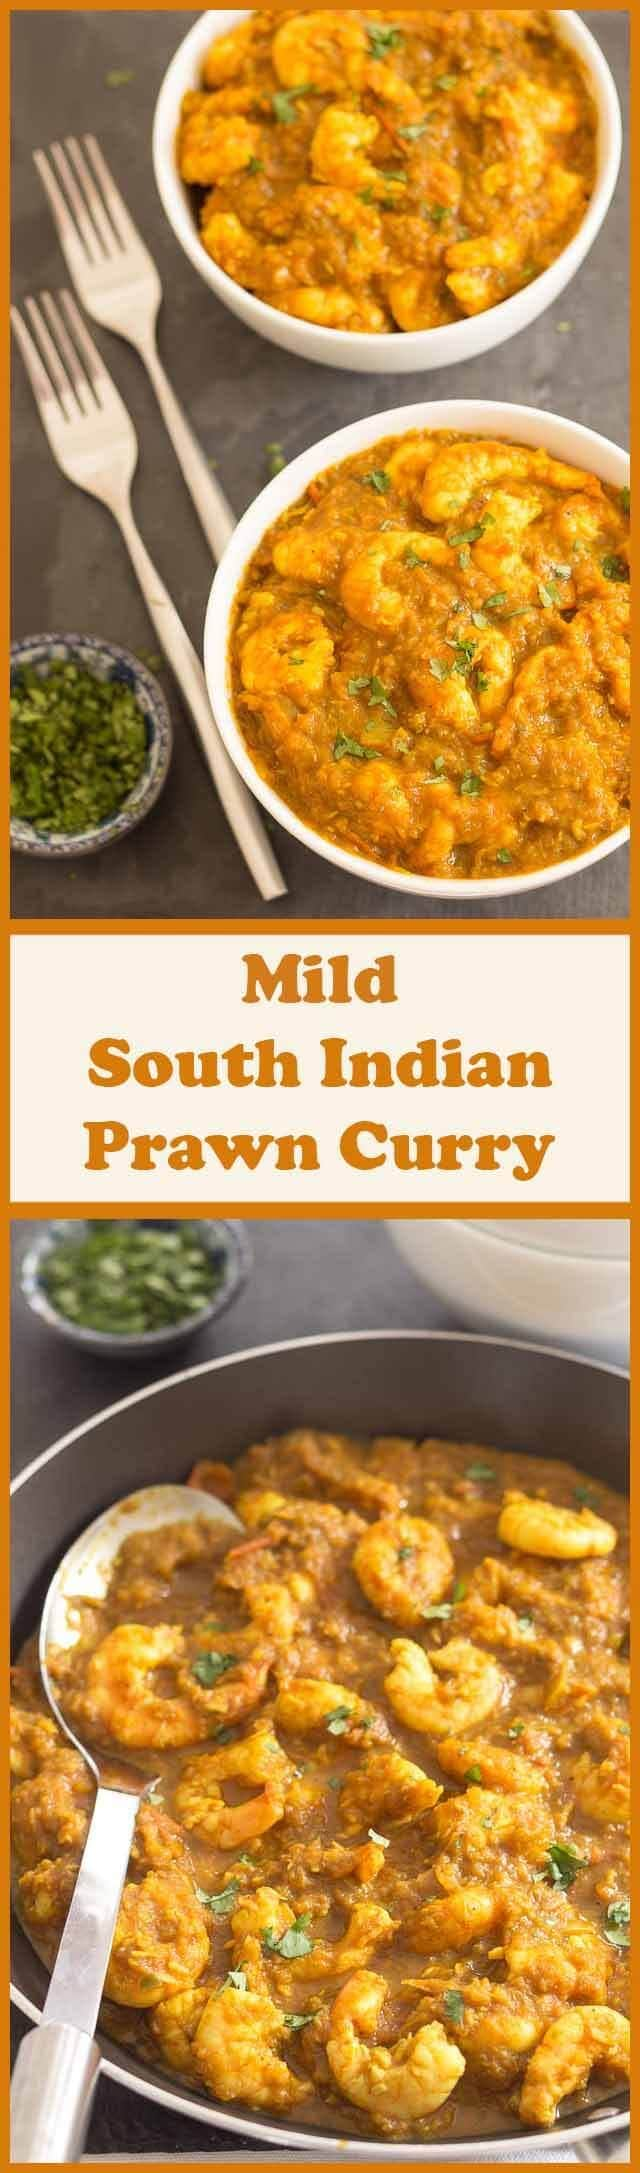 This mild South Indian prawn curry really is an easy and delicious healthy meal. If you're calorie counting or health conscious the bonus is this curry comes in at an extremely low 200 calories per portion.